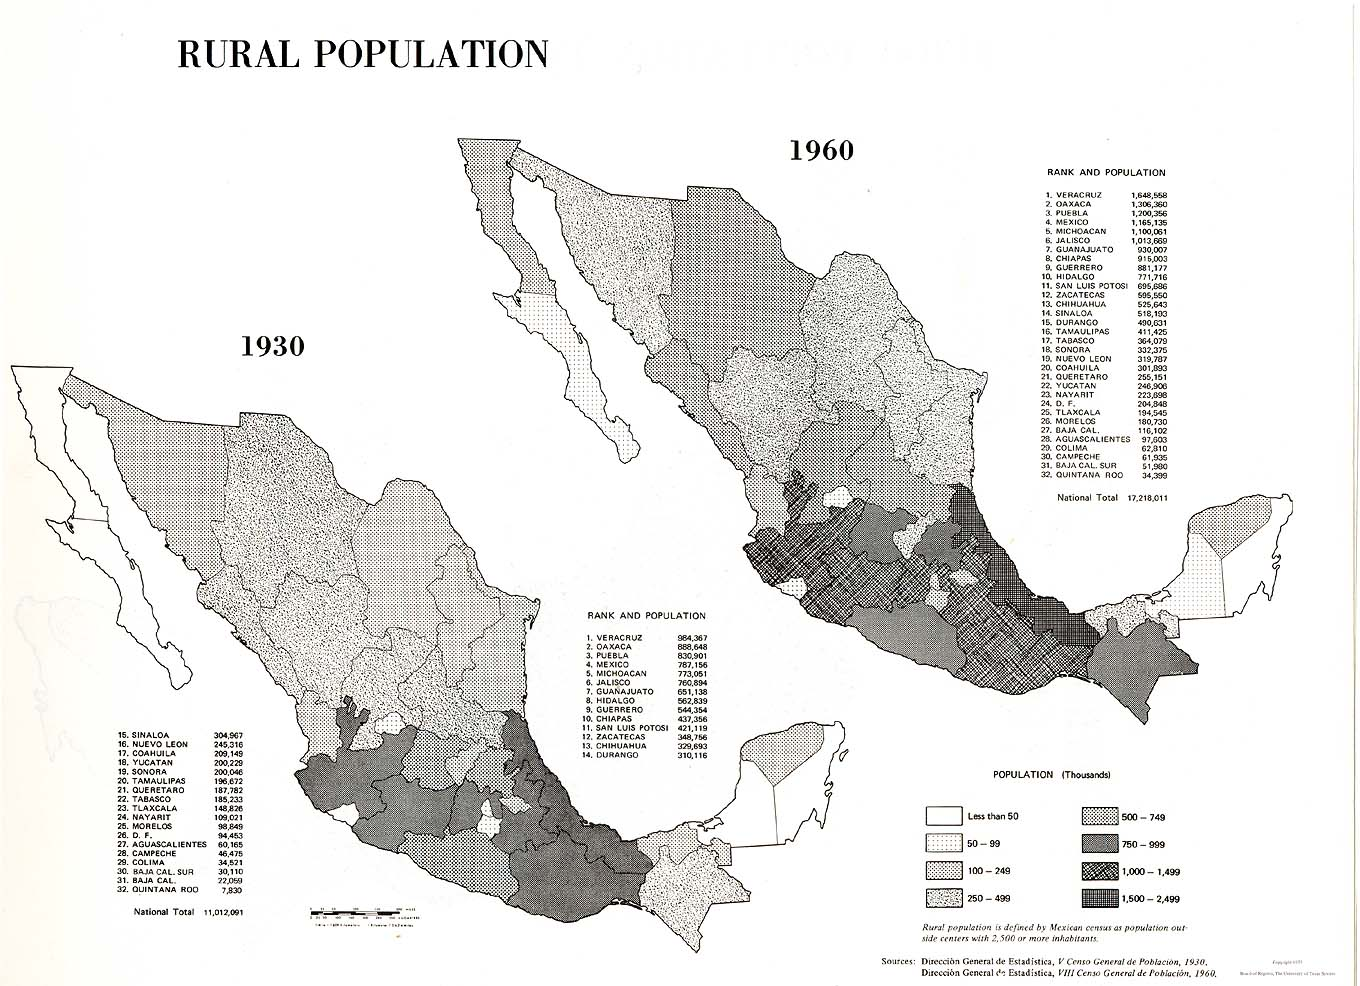 Map of Rural Population, Mexico 1930, 1960